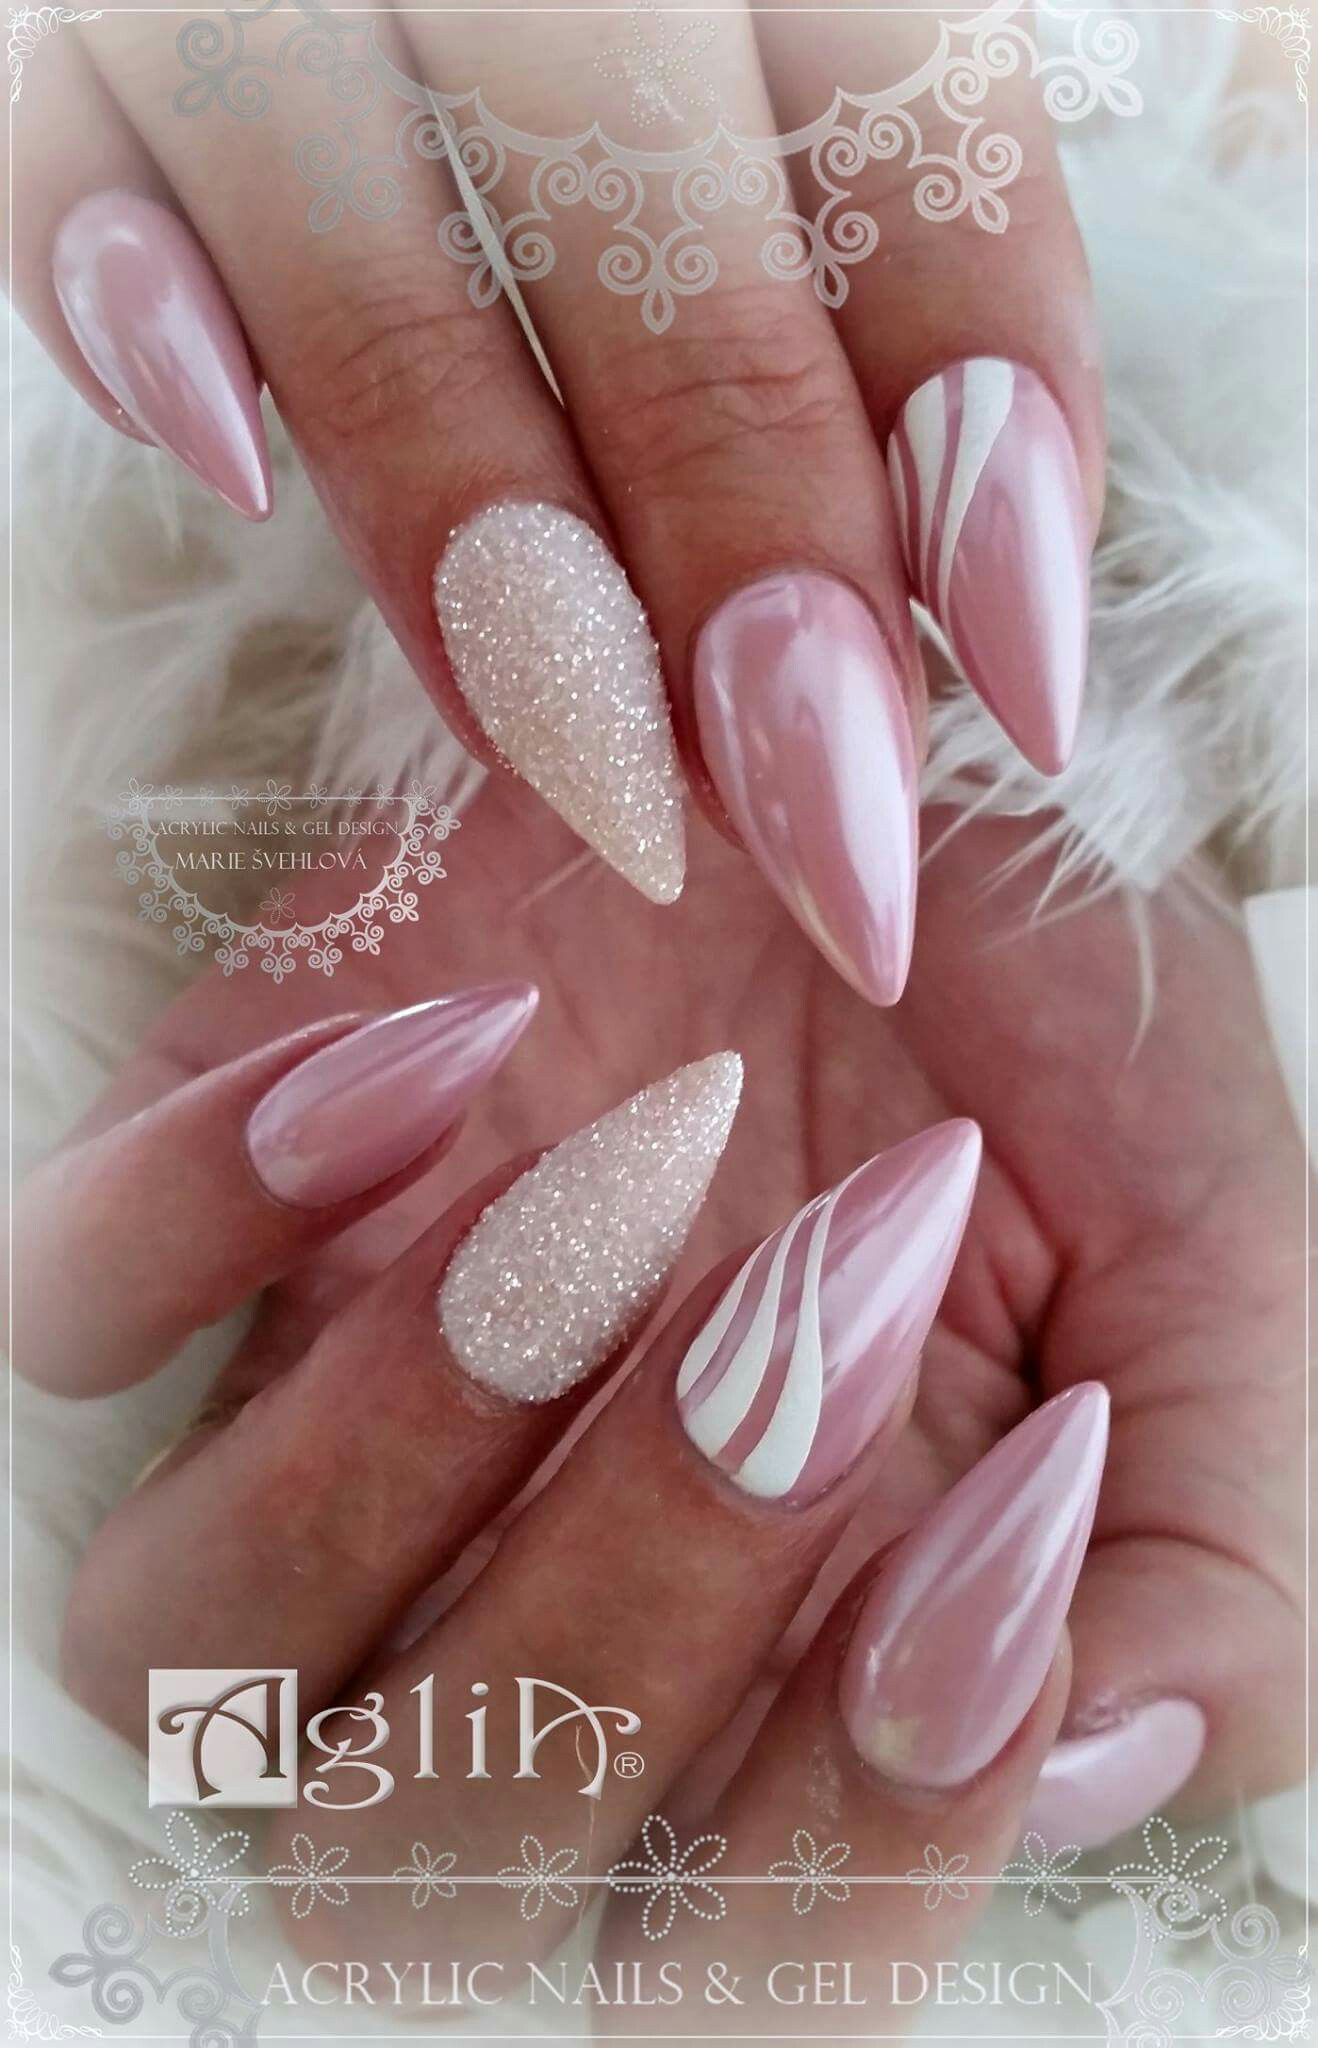 Acrylic Mail S Gel Design Chrome White Nails Pink Chrome Nails Pink Nails White Nail Designs